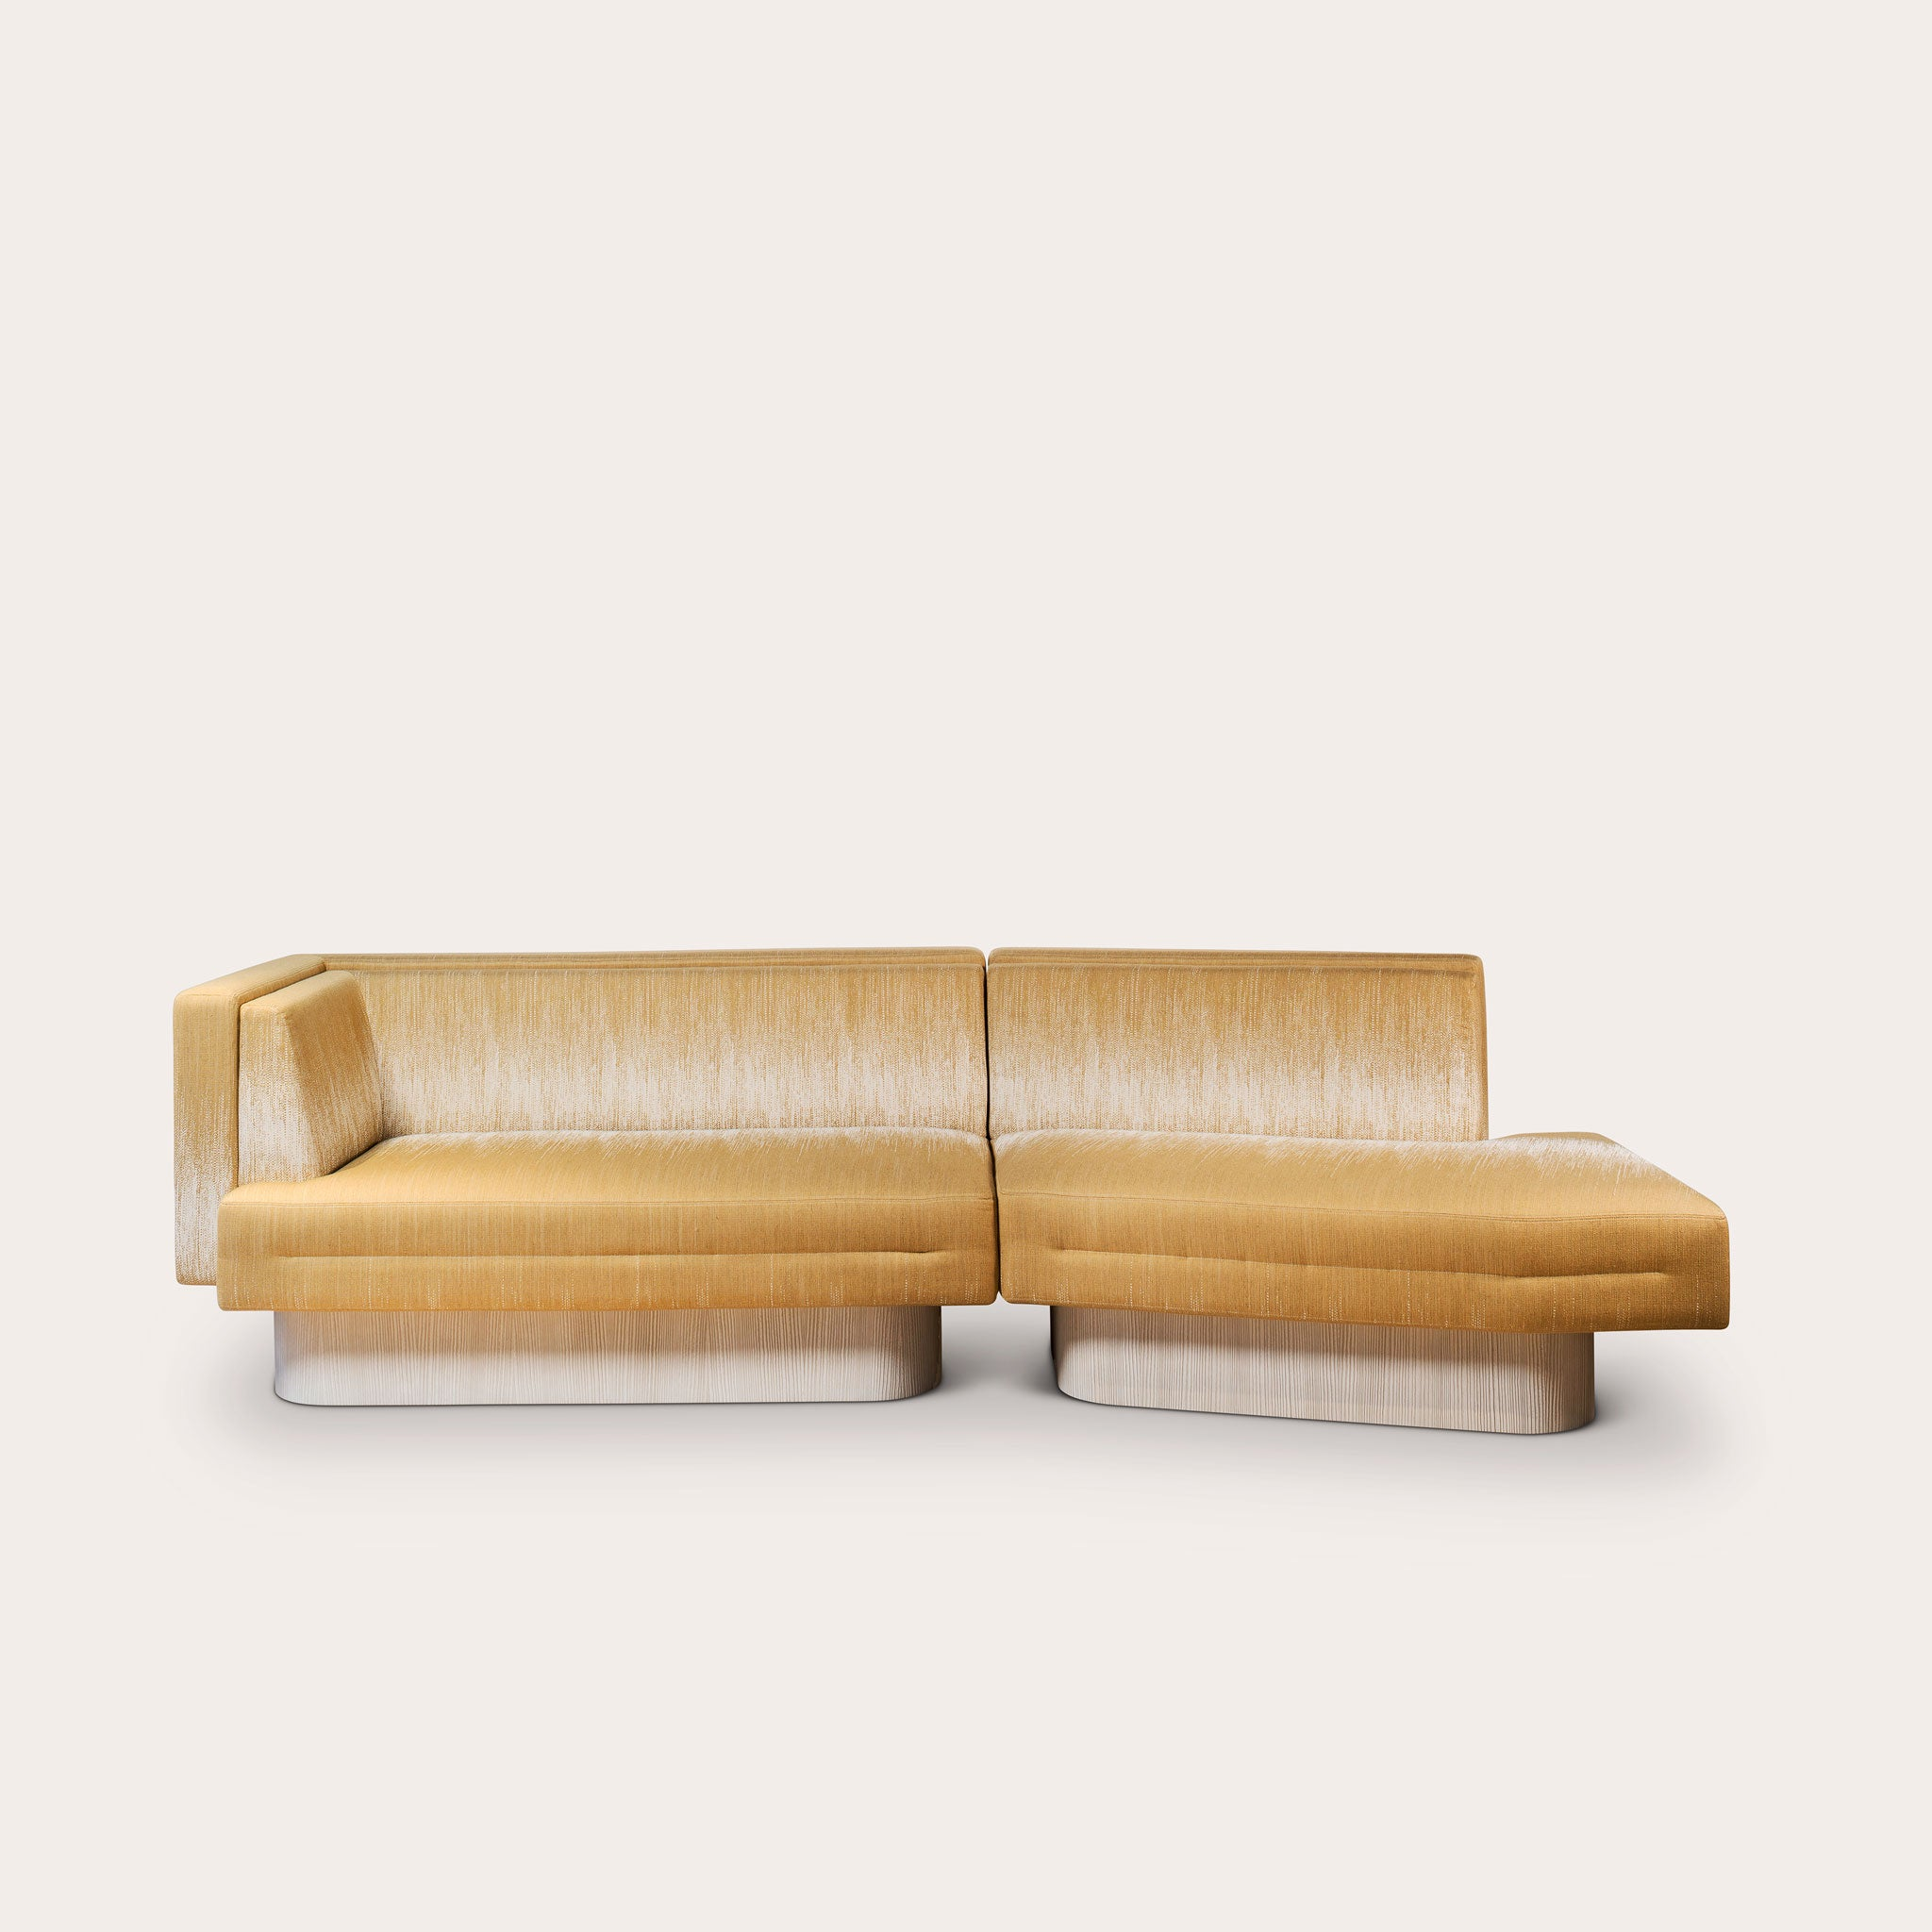 NASHVILLE Sofa Seating Bruno Moinard Designer Furniture Sku: 773-240-10061